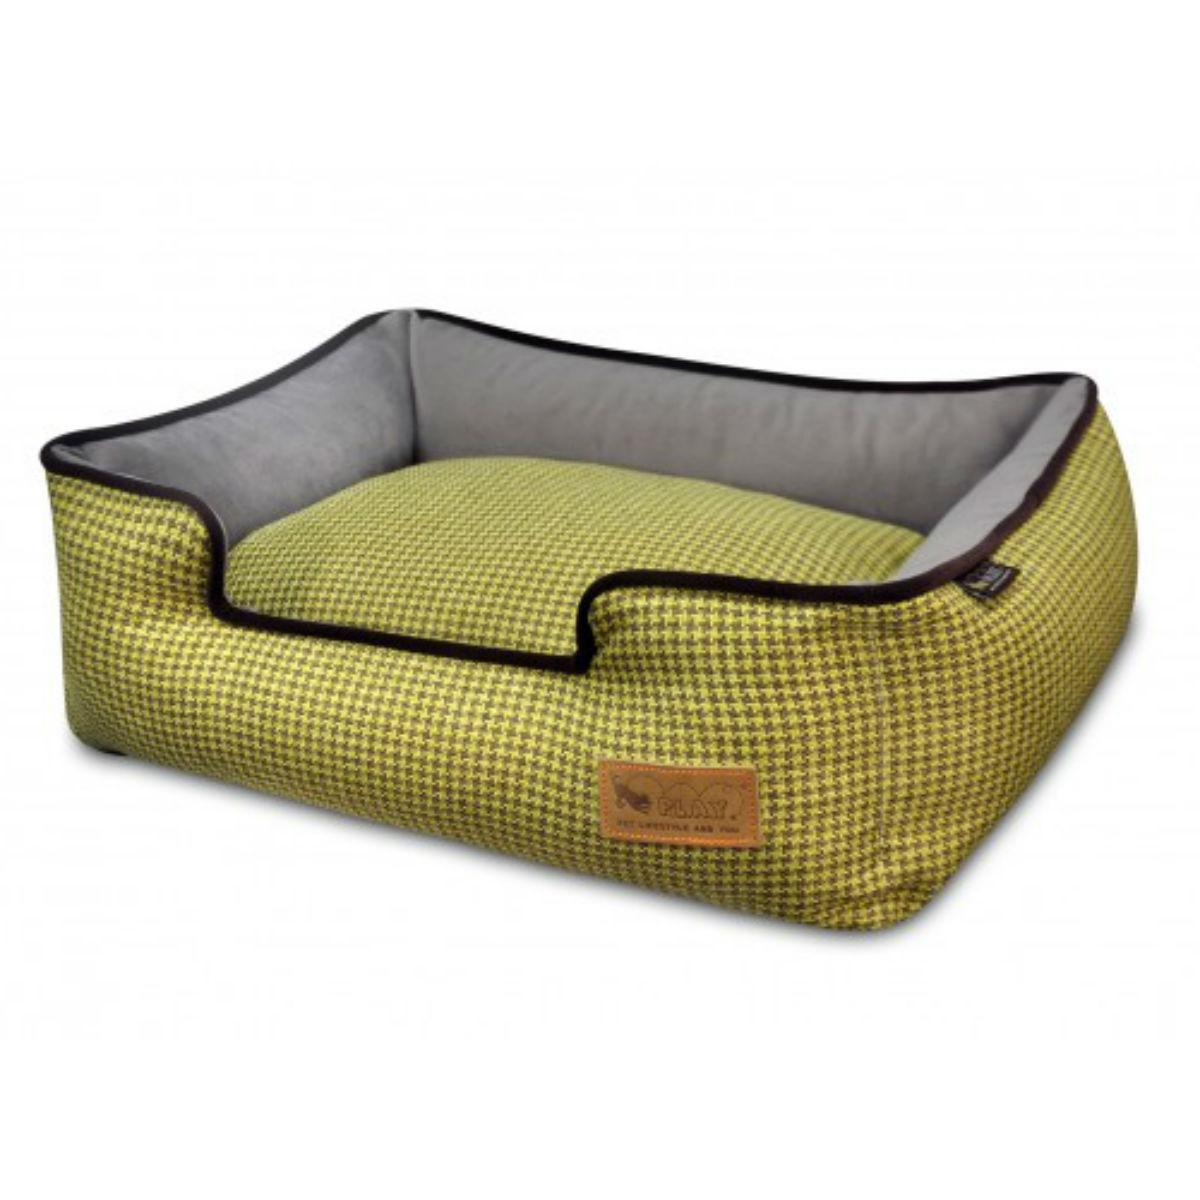 P.L.A.Y. Houndstooth Lounge Dog Bed - Buttercup Yellow